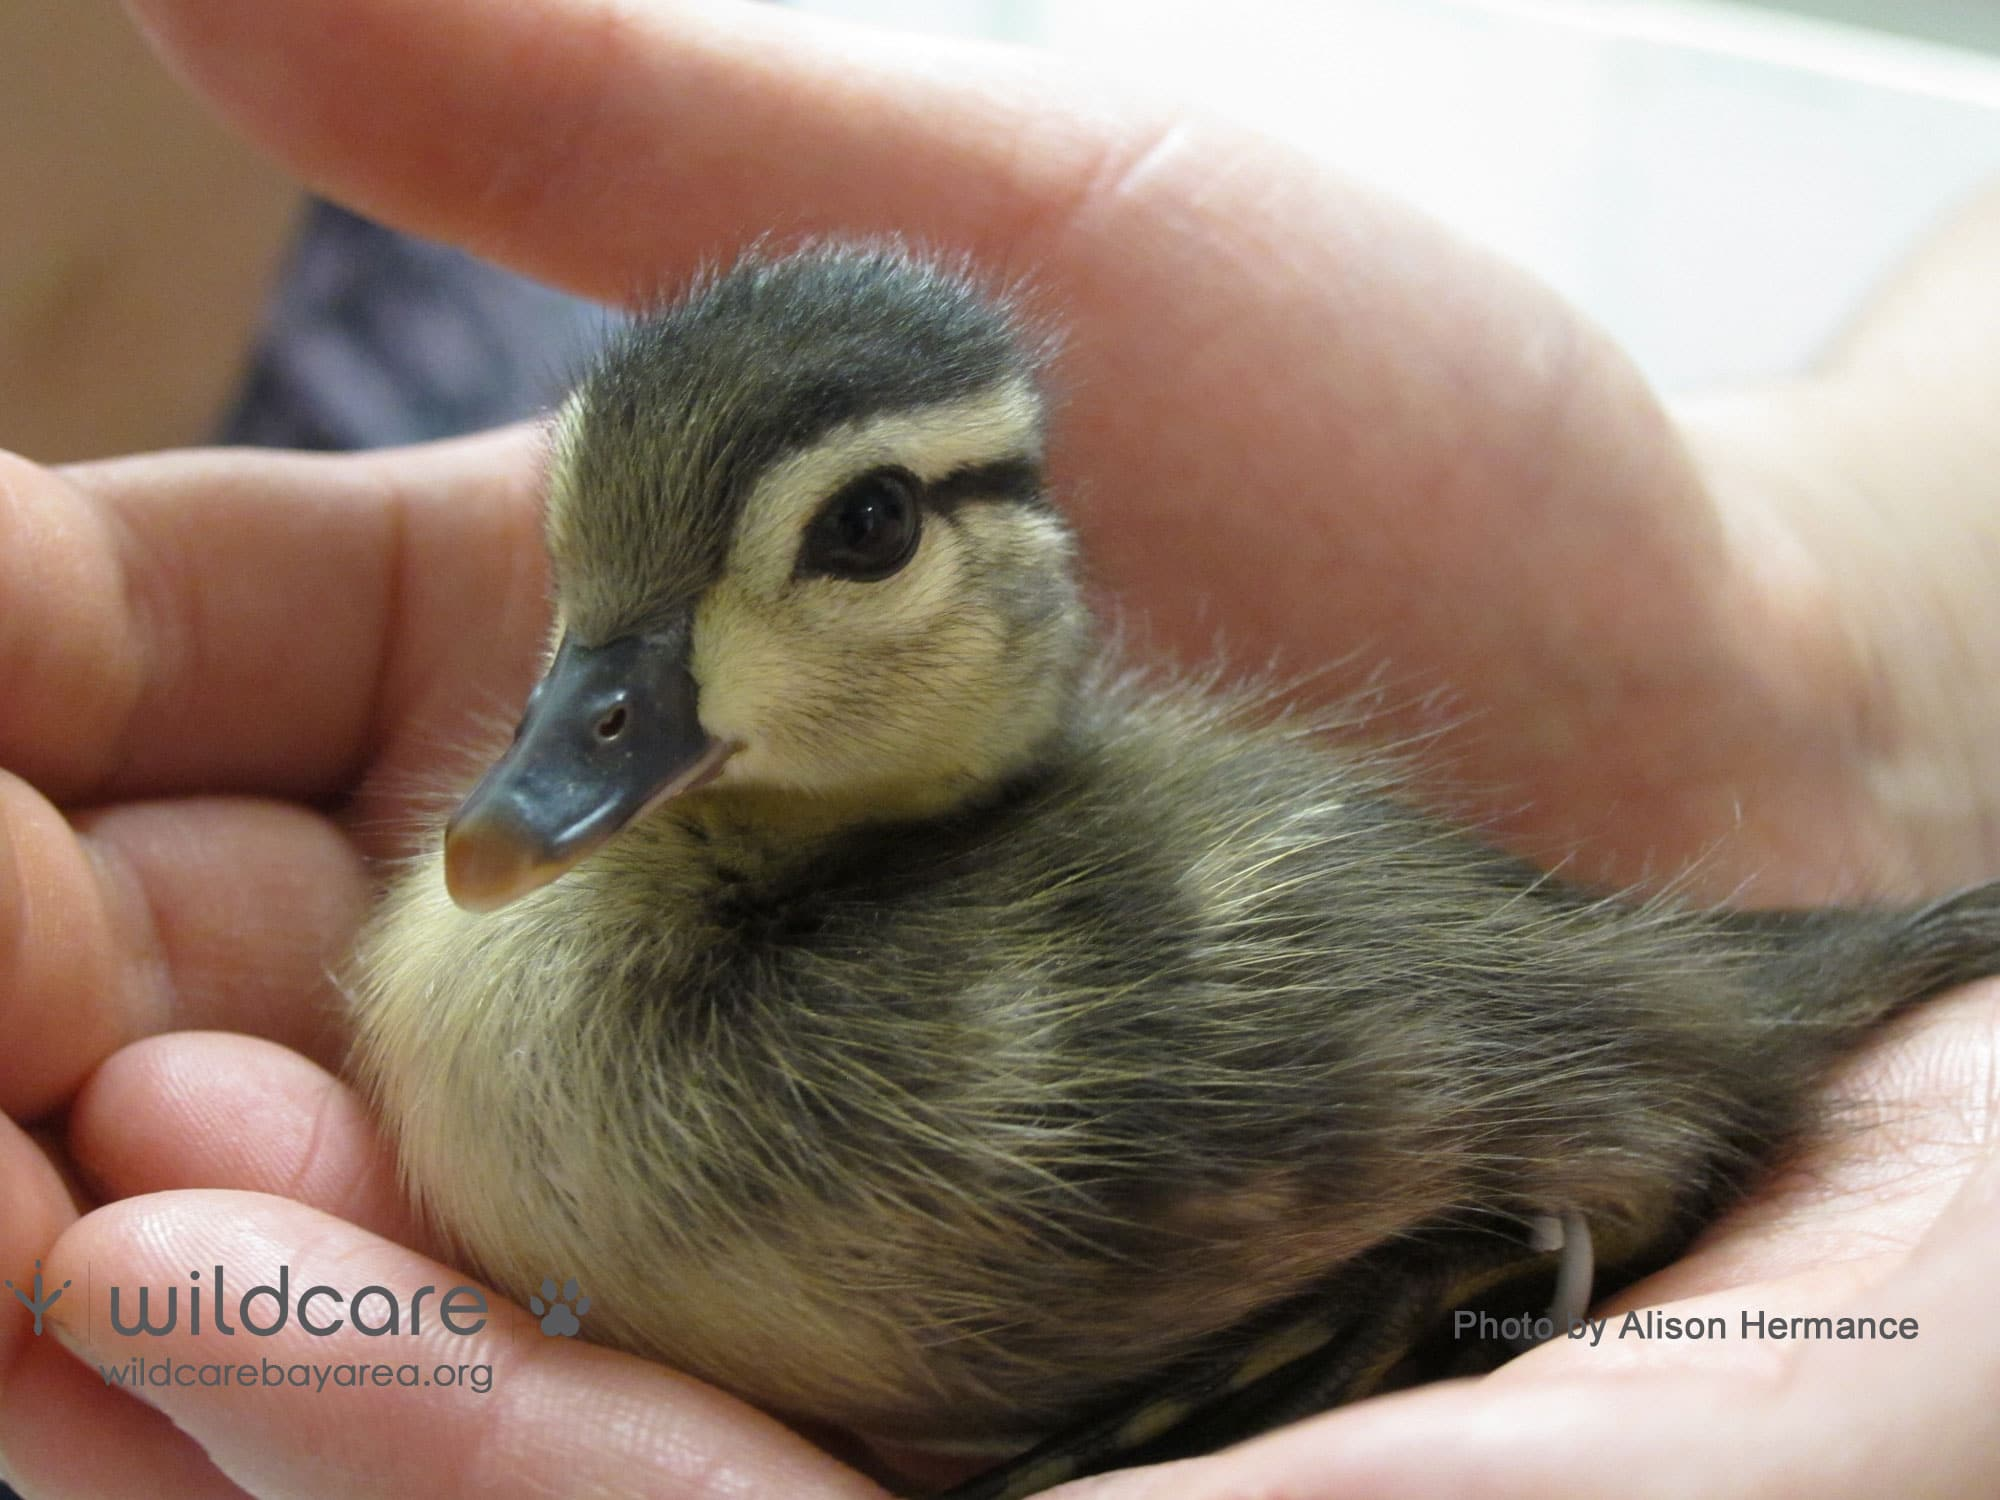 Baby Wood Duck at WildCare. Photo by Alison Hermance